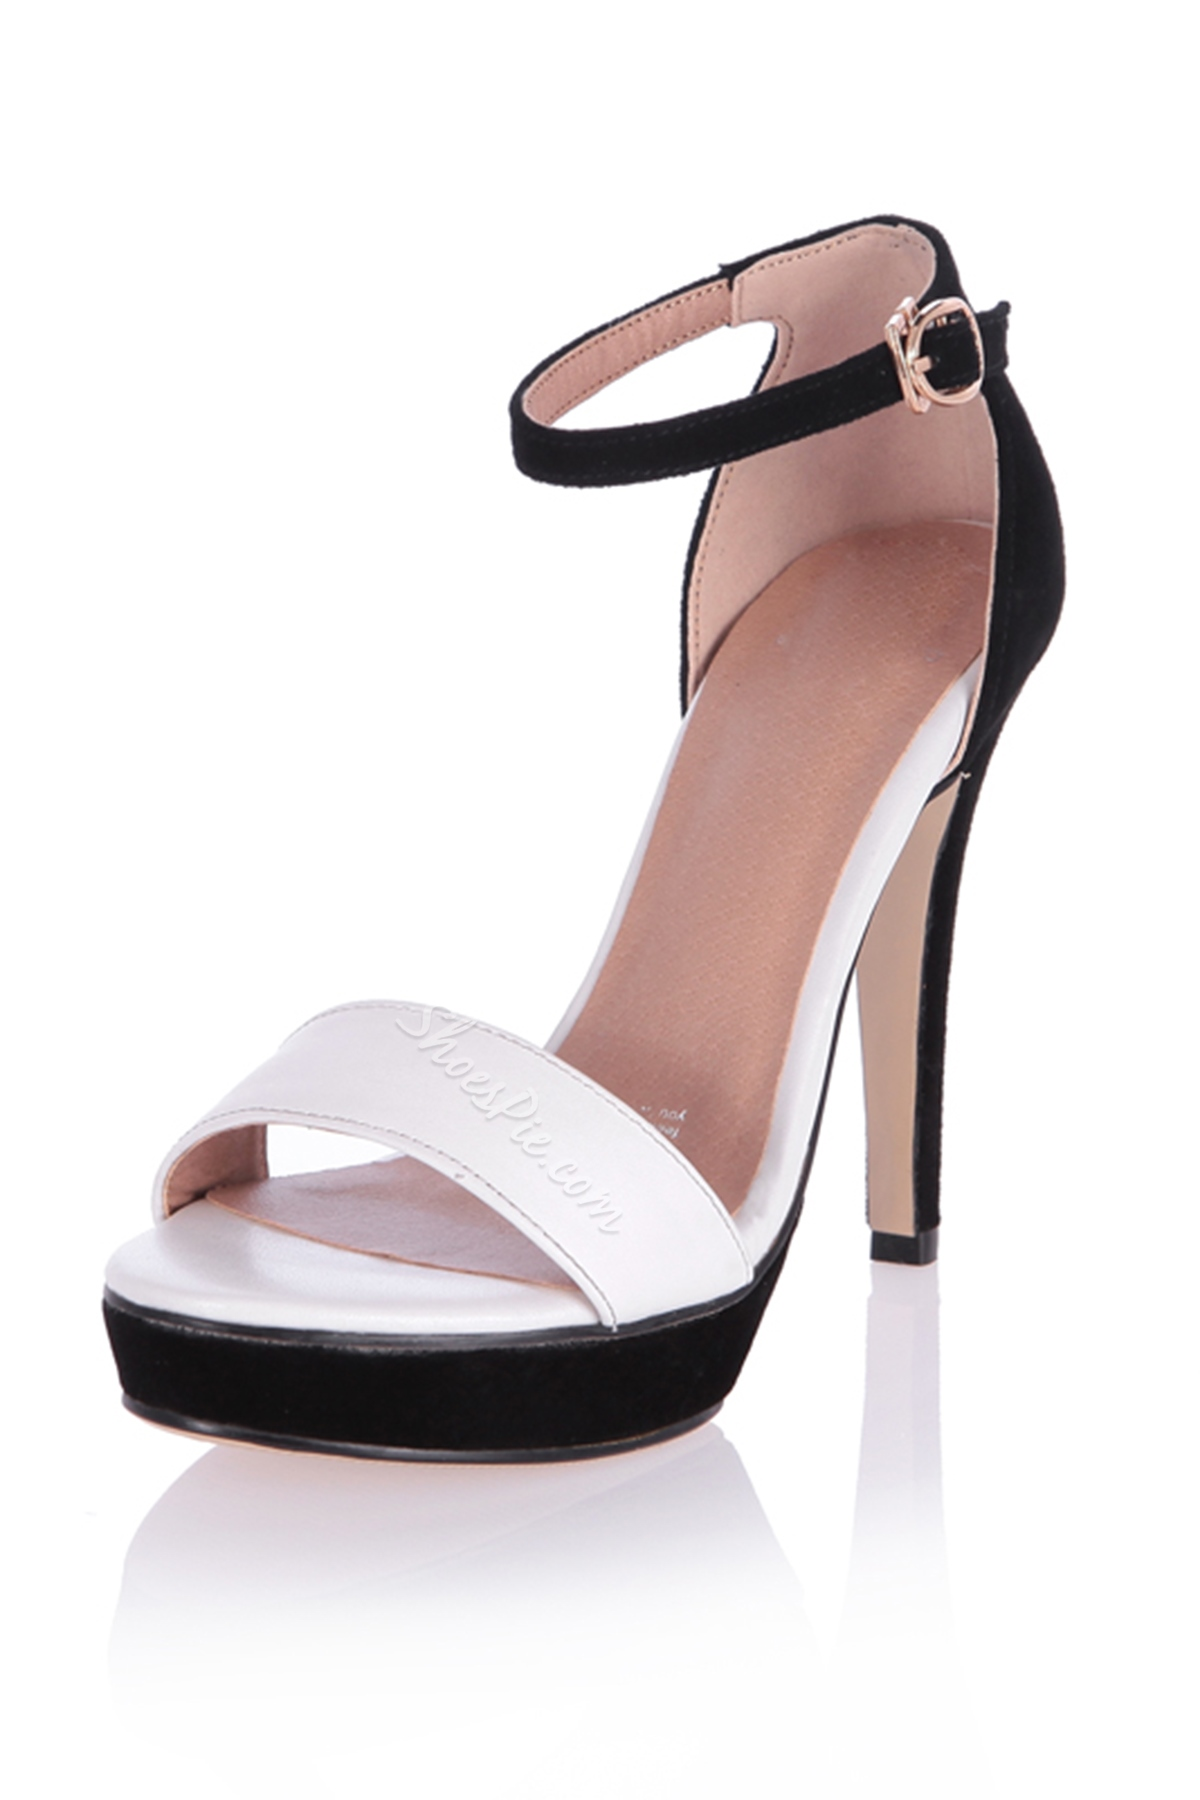 Glamorous White Strap Stiletto Heel Platform Sandals